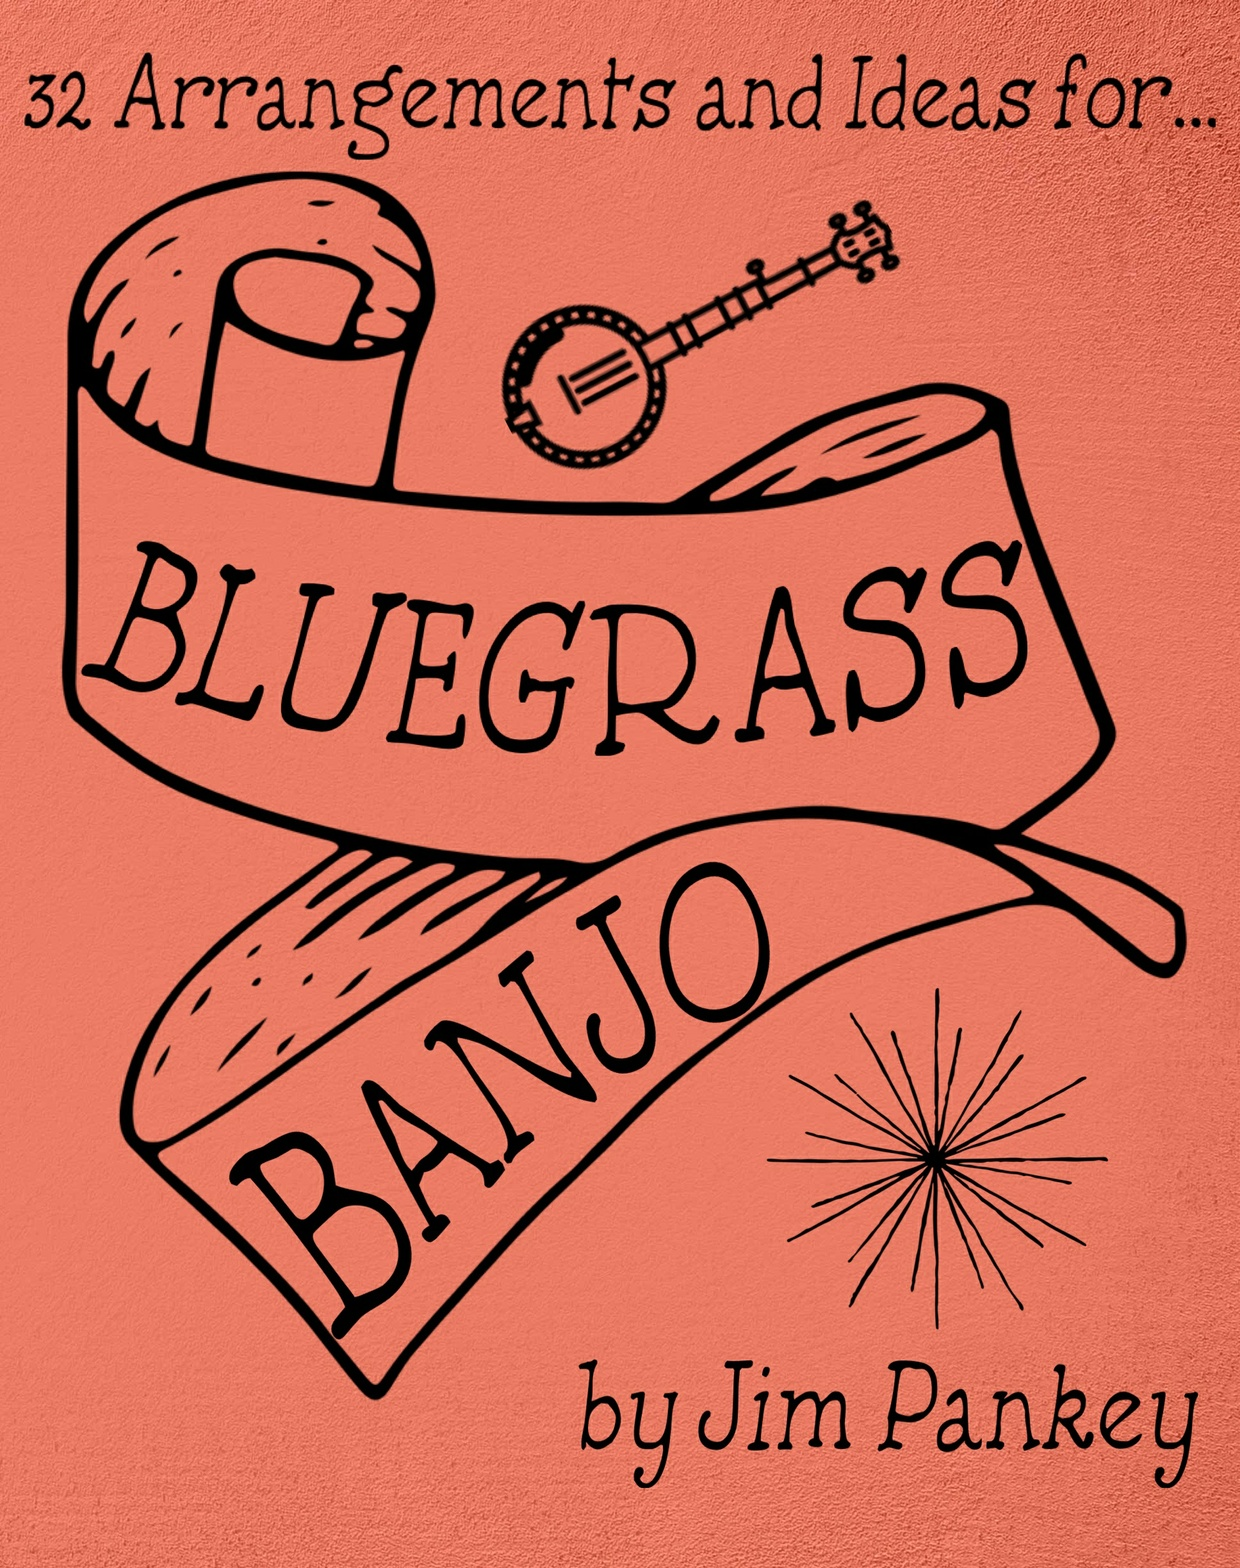 32 Arrangements and Ideas for Bluegrass Banjo